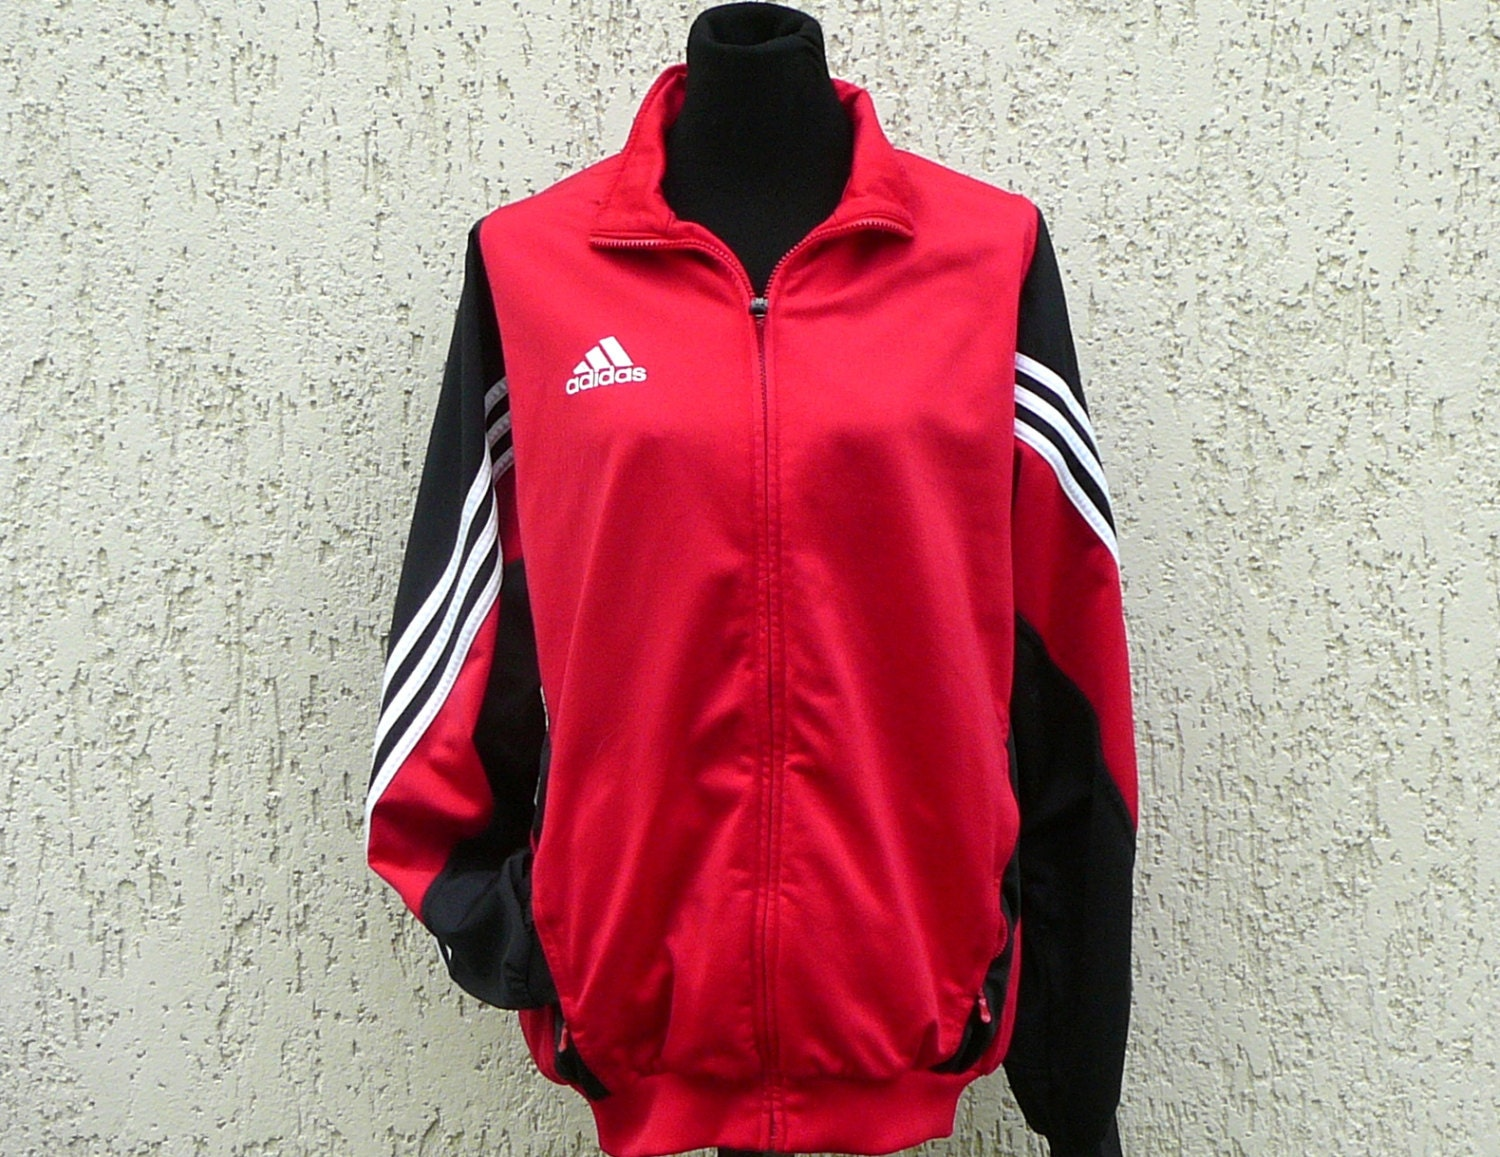 red and black adidas jacket